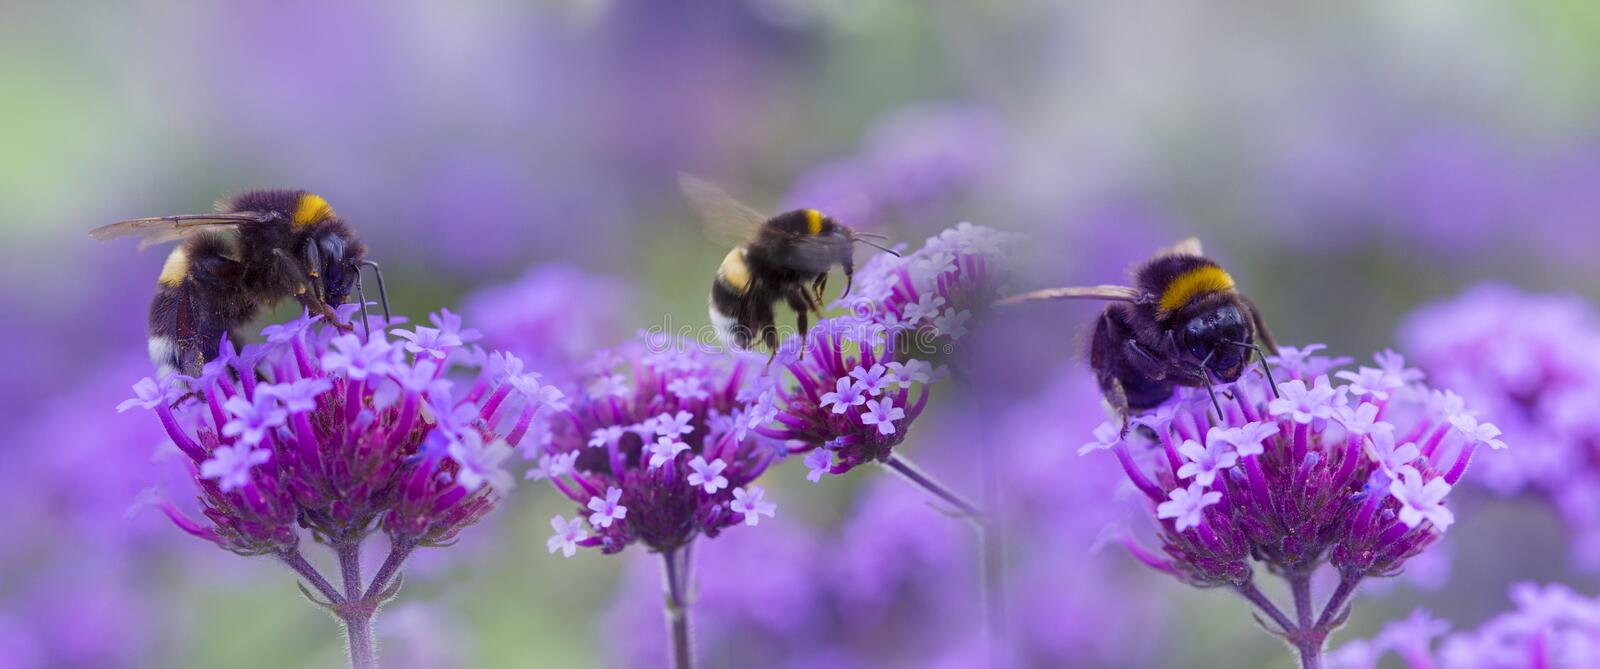 Bumblebees on the garden flower. Macro photo stock images